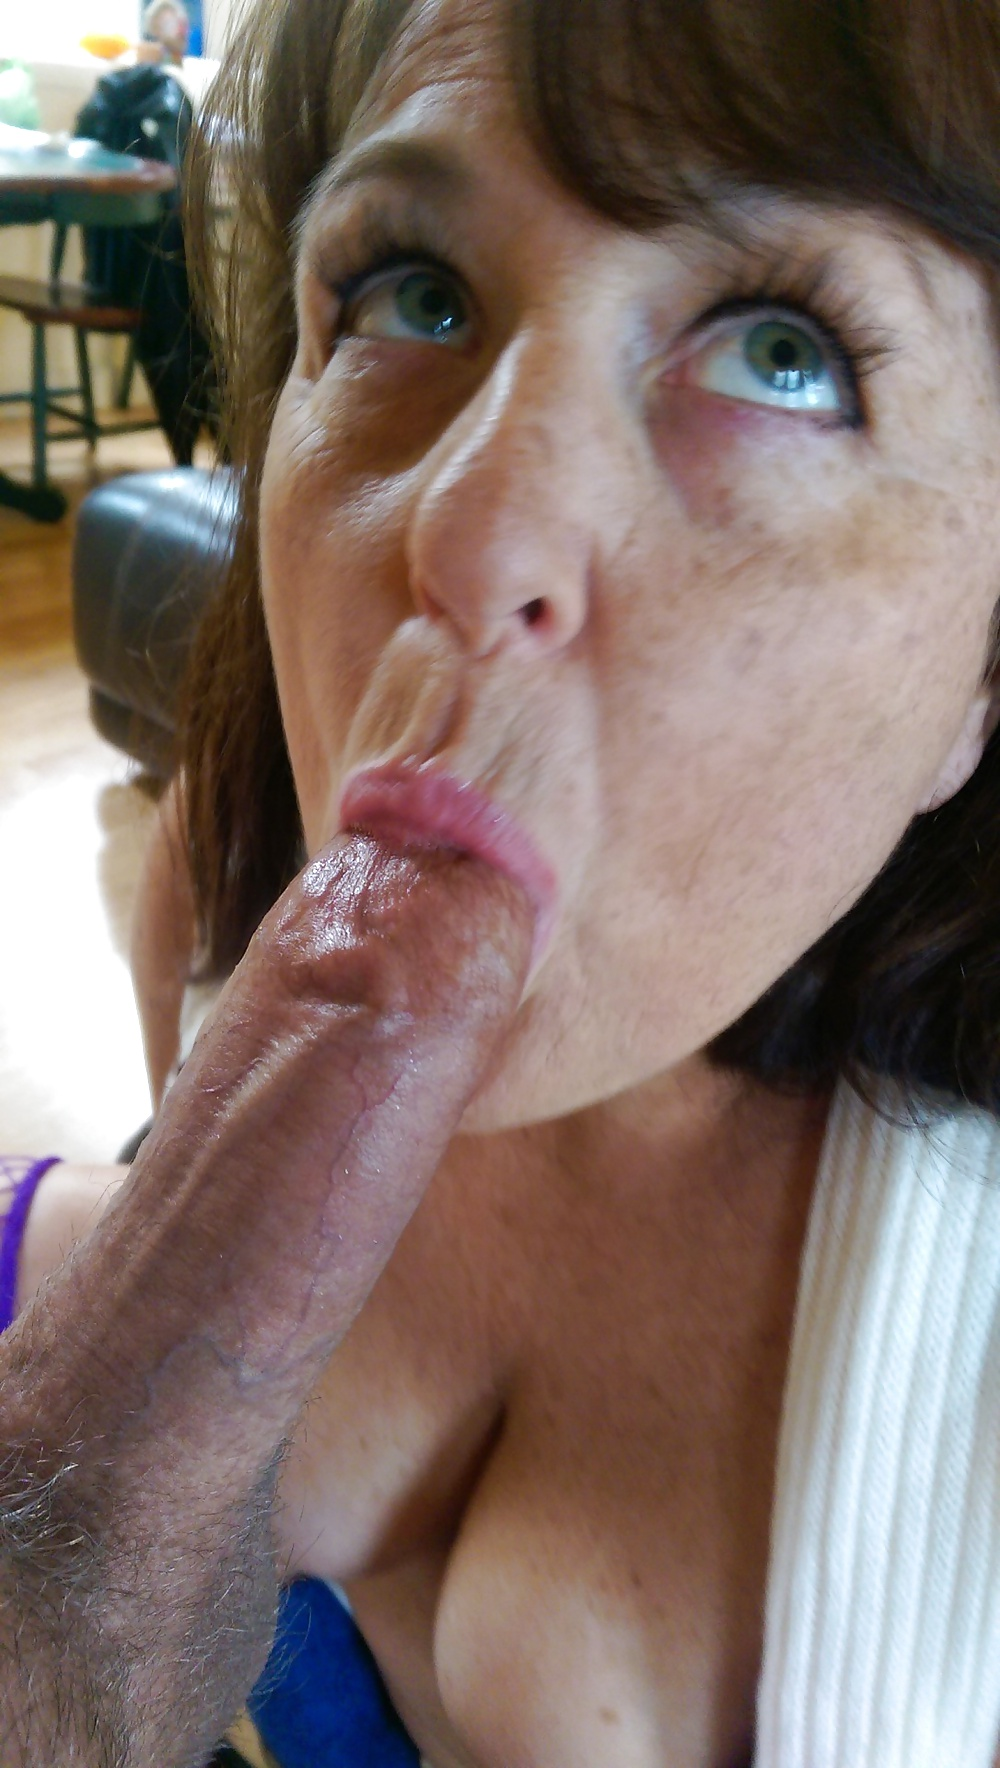 French Milf Blowjob On Cam Xxx Galery Pics Sex Images